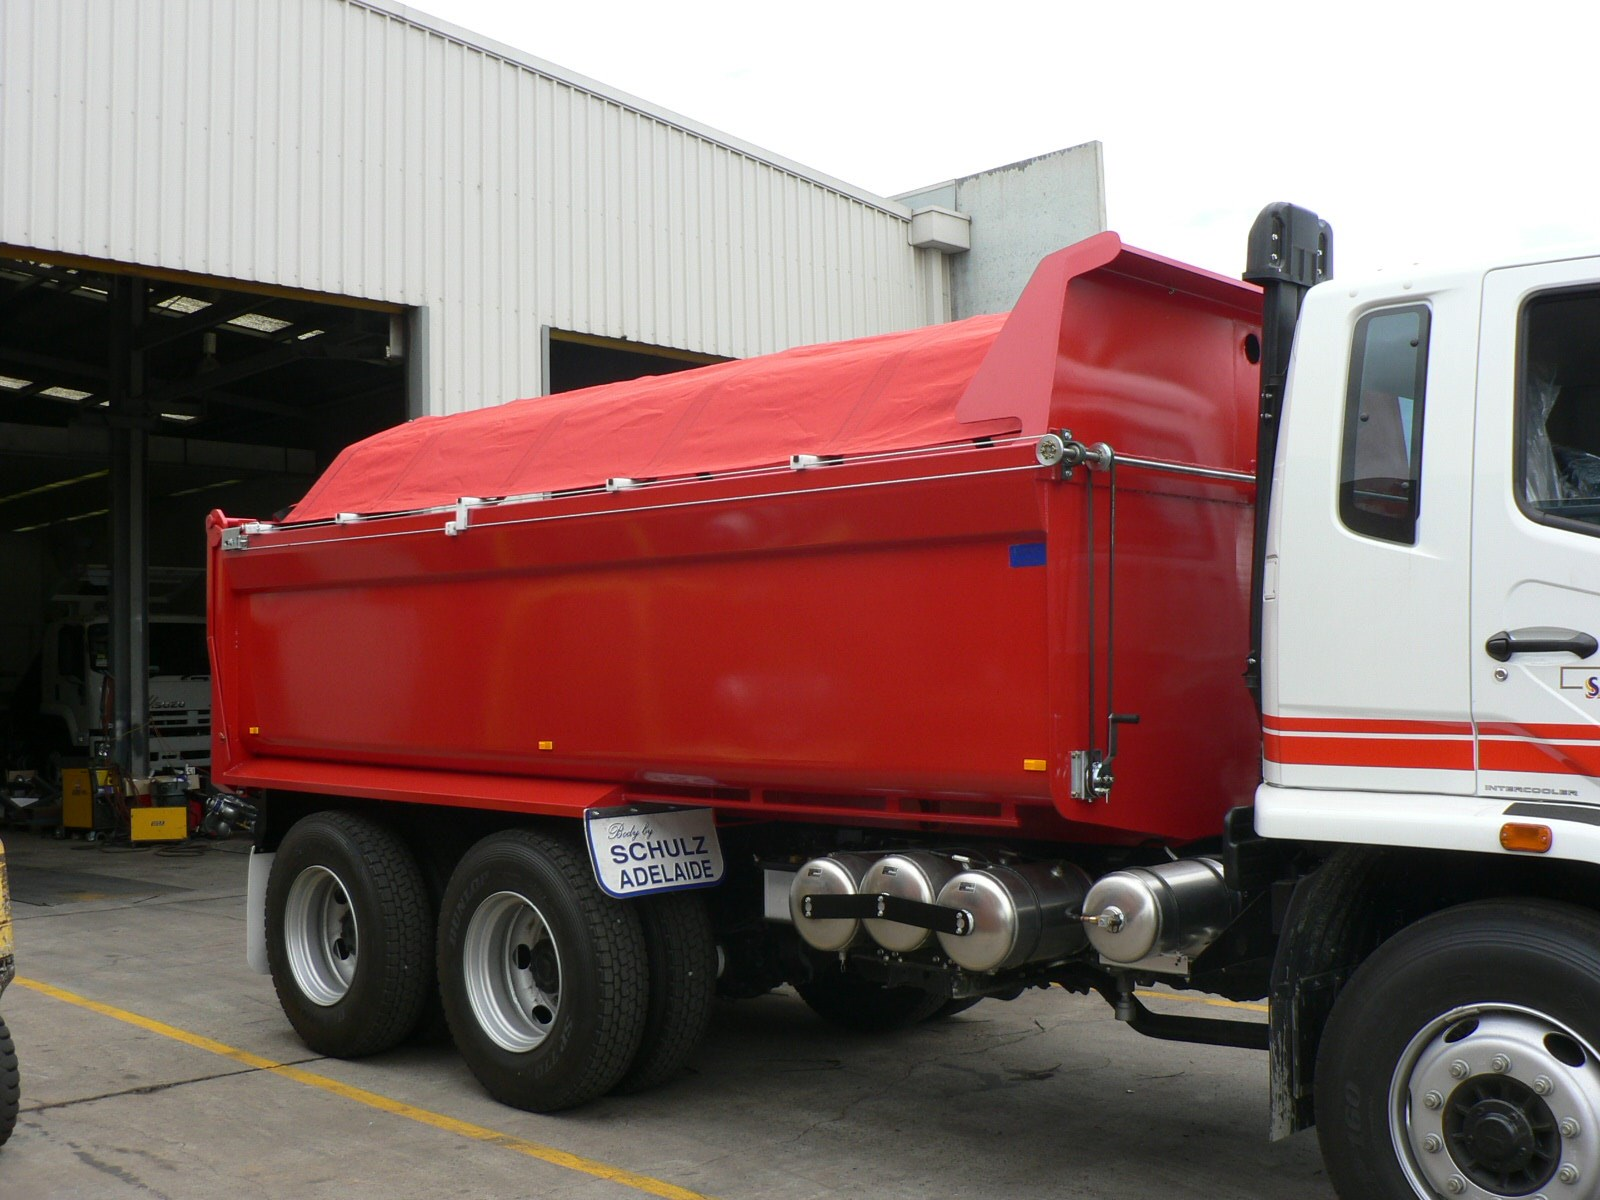 JG Schulz Motor Body Builders, Adelaide, South Australia - Tippers - Tarps